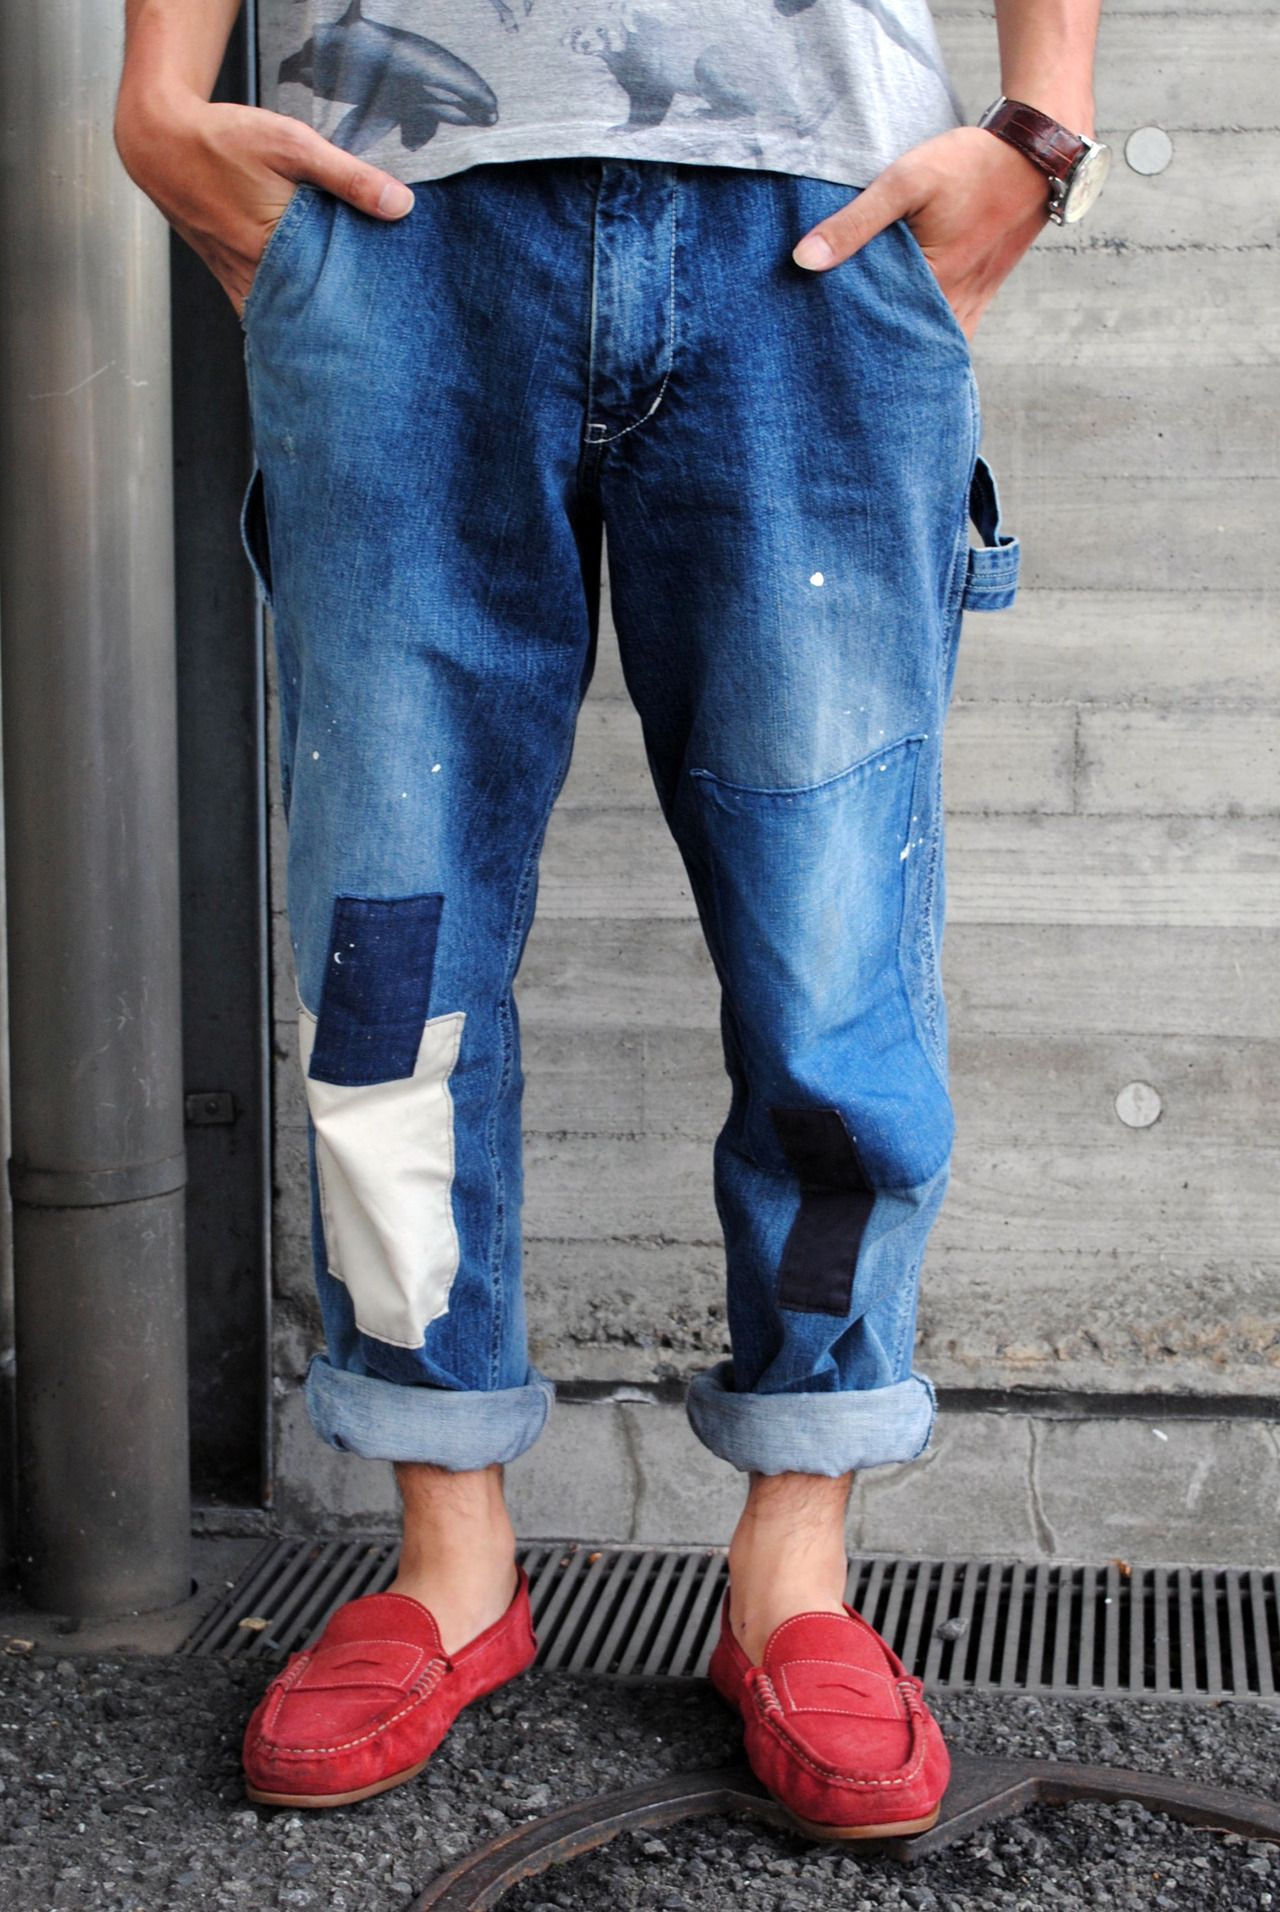 Lovely repaired jeans - no one does vintage denim quite like the Japanese! WGSN street shot, Tokyo #streetstyle